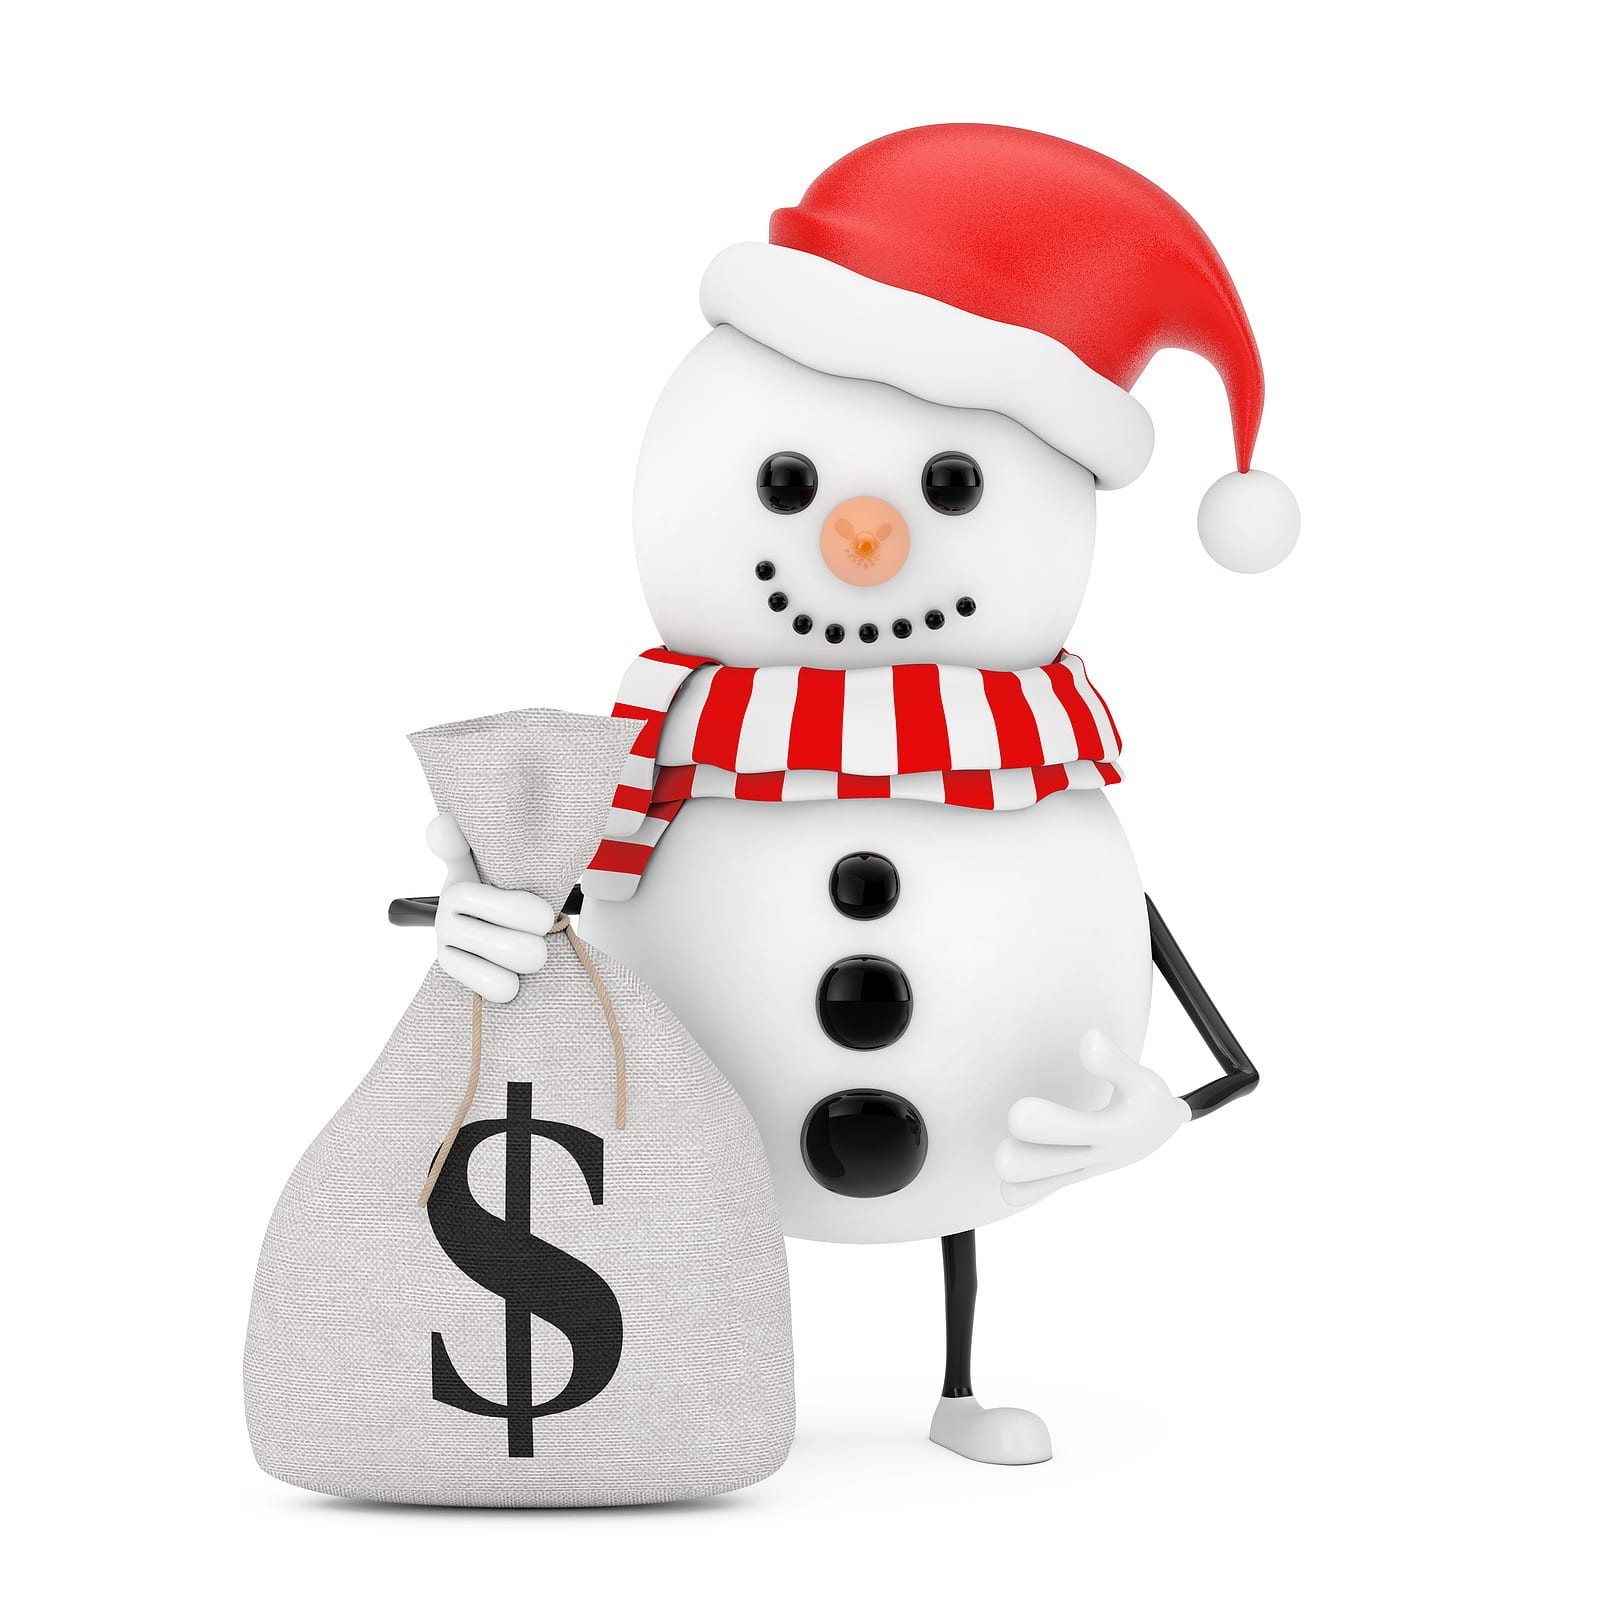 snowman holding a money bag